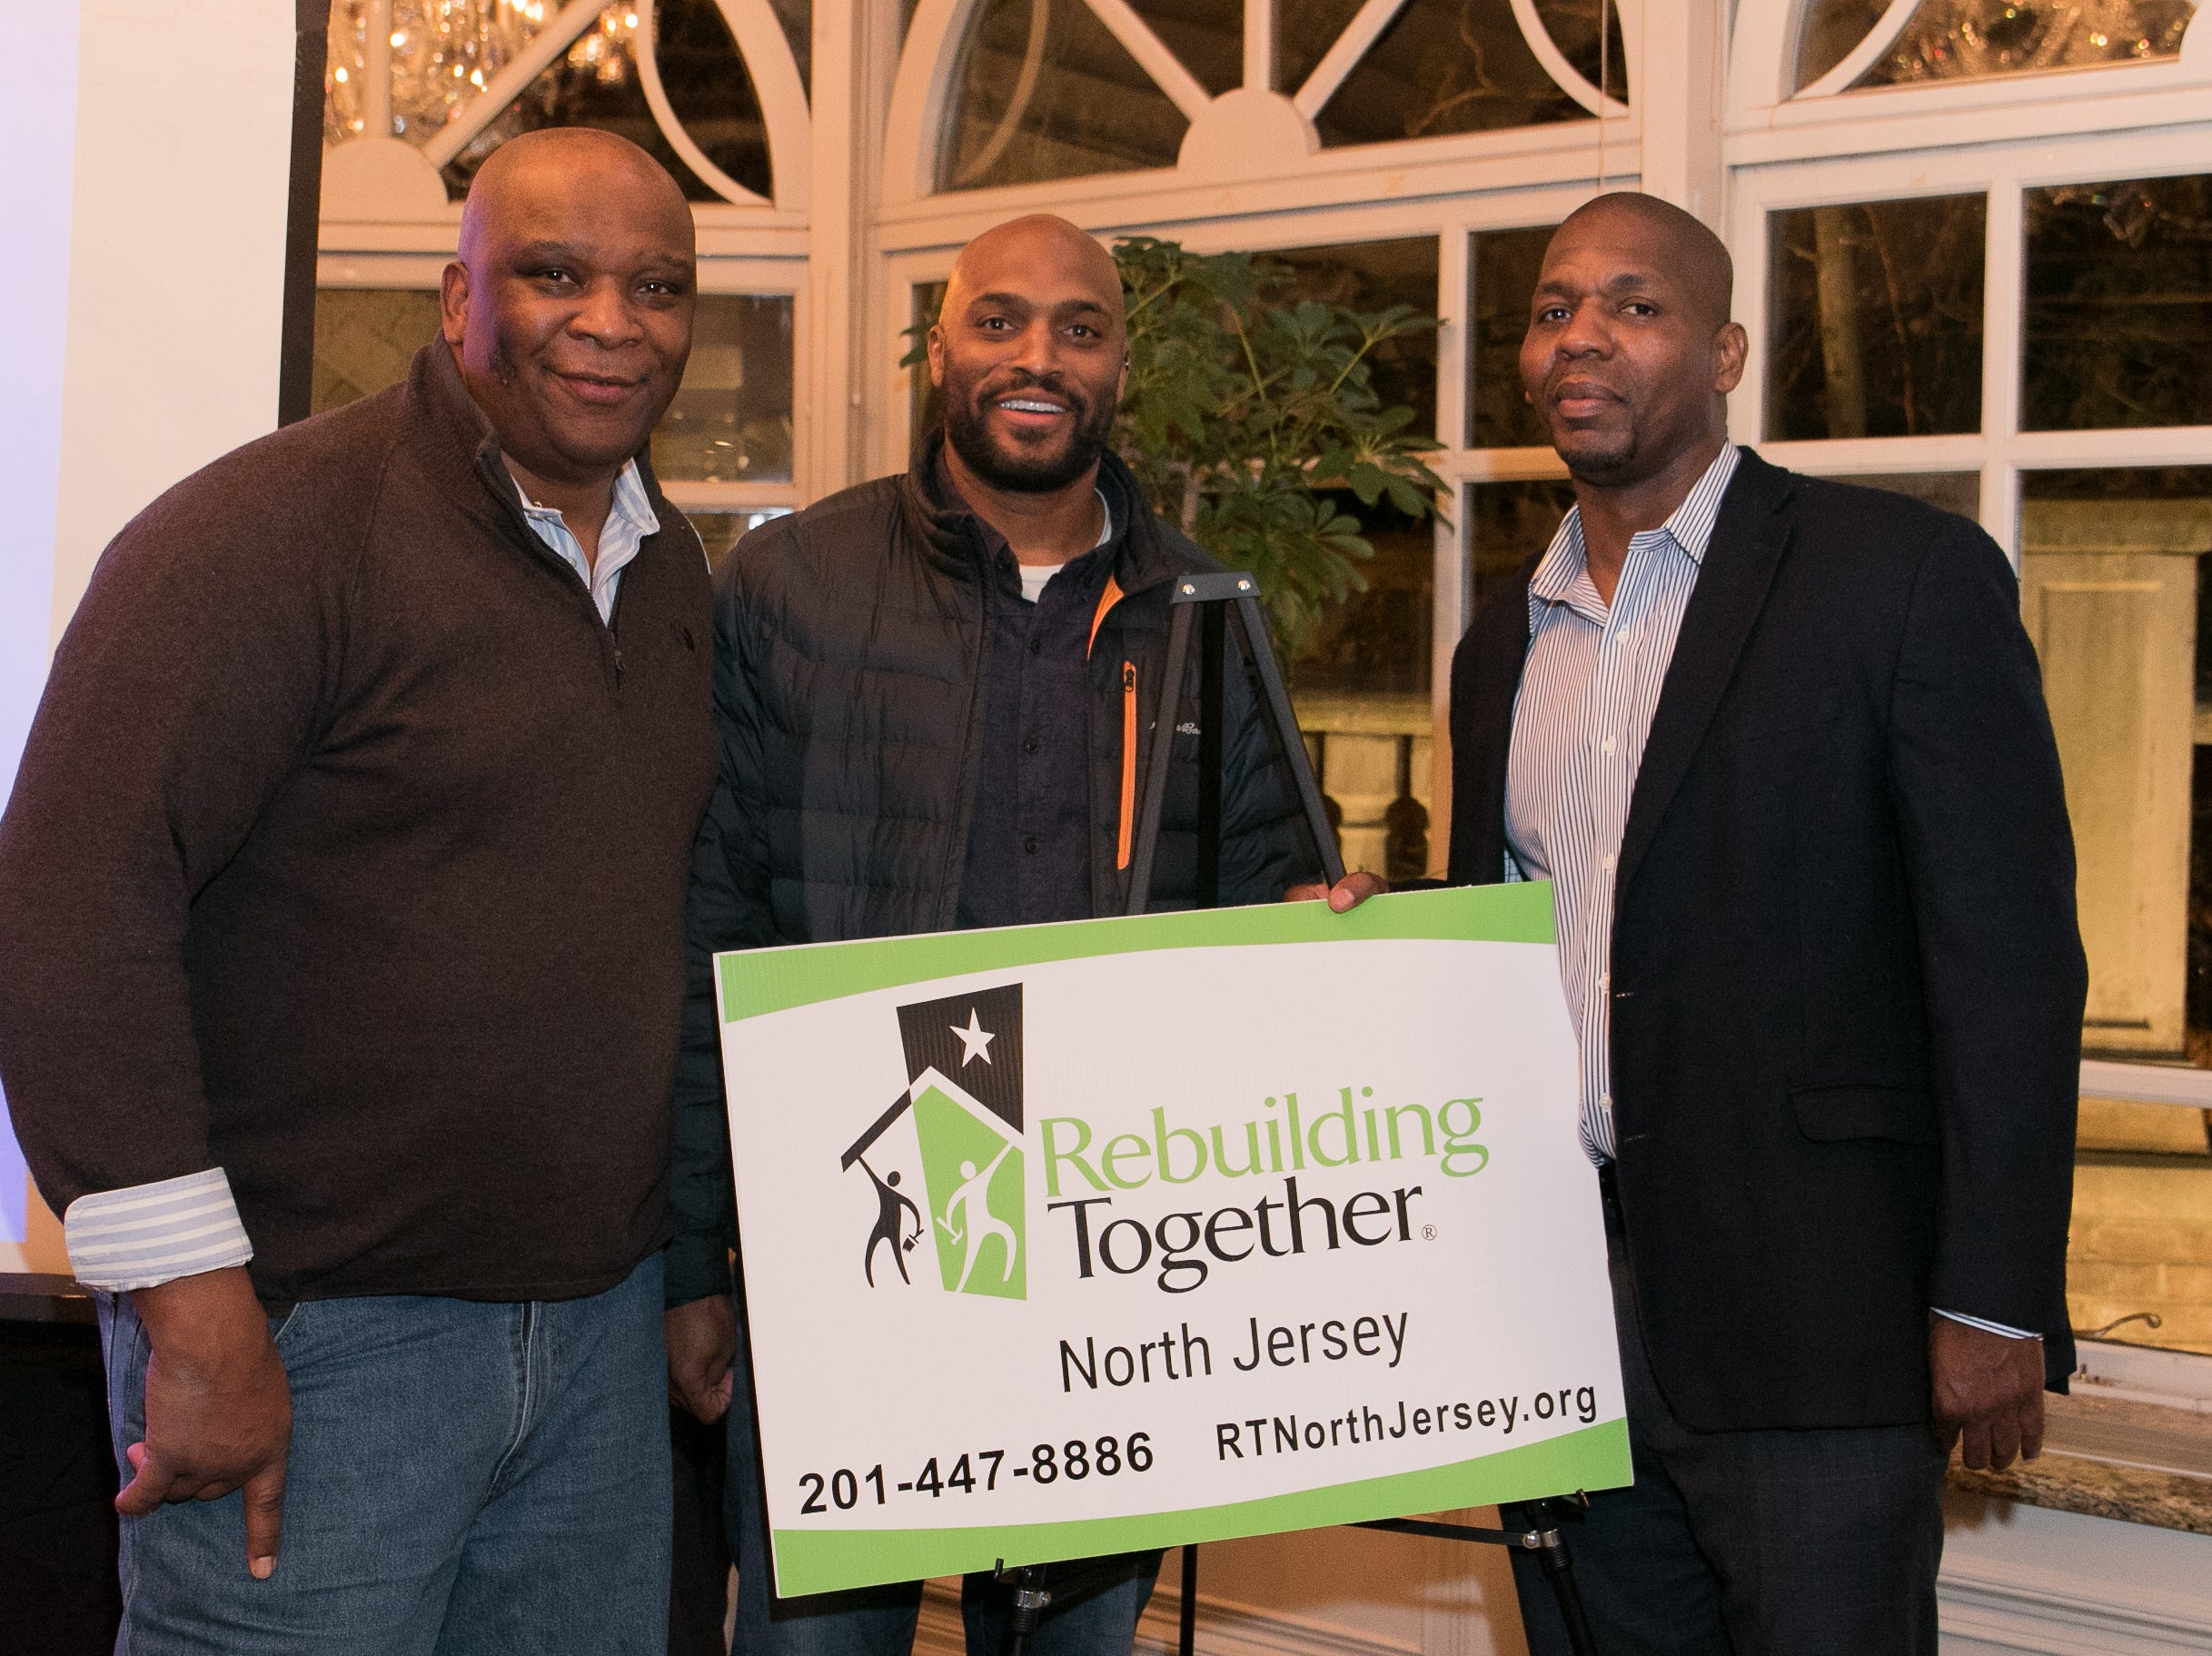 Former NY Giants Howard Cross, Amani Toomer and Sam Garnes. Rebuilding Together North Jersey held its third annual Beefsteak Dinner with former NY Giants Howard Cross, Amani Toomer, and Sam Garnes at the Brownstone in Paterson. 03/07/2019